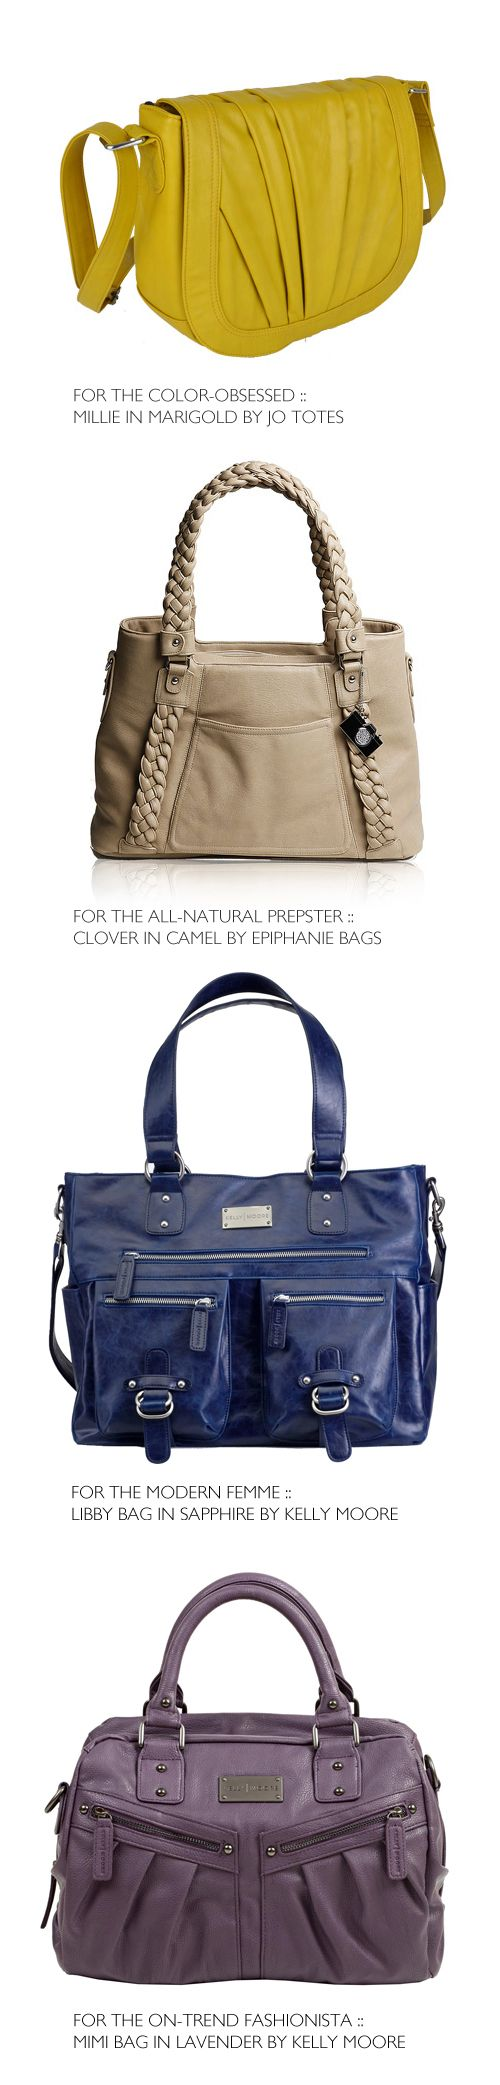 Stylish camera bags for ladies!